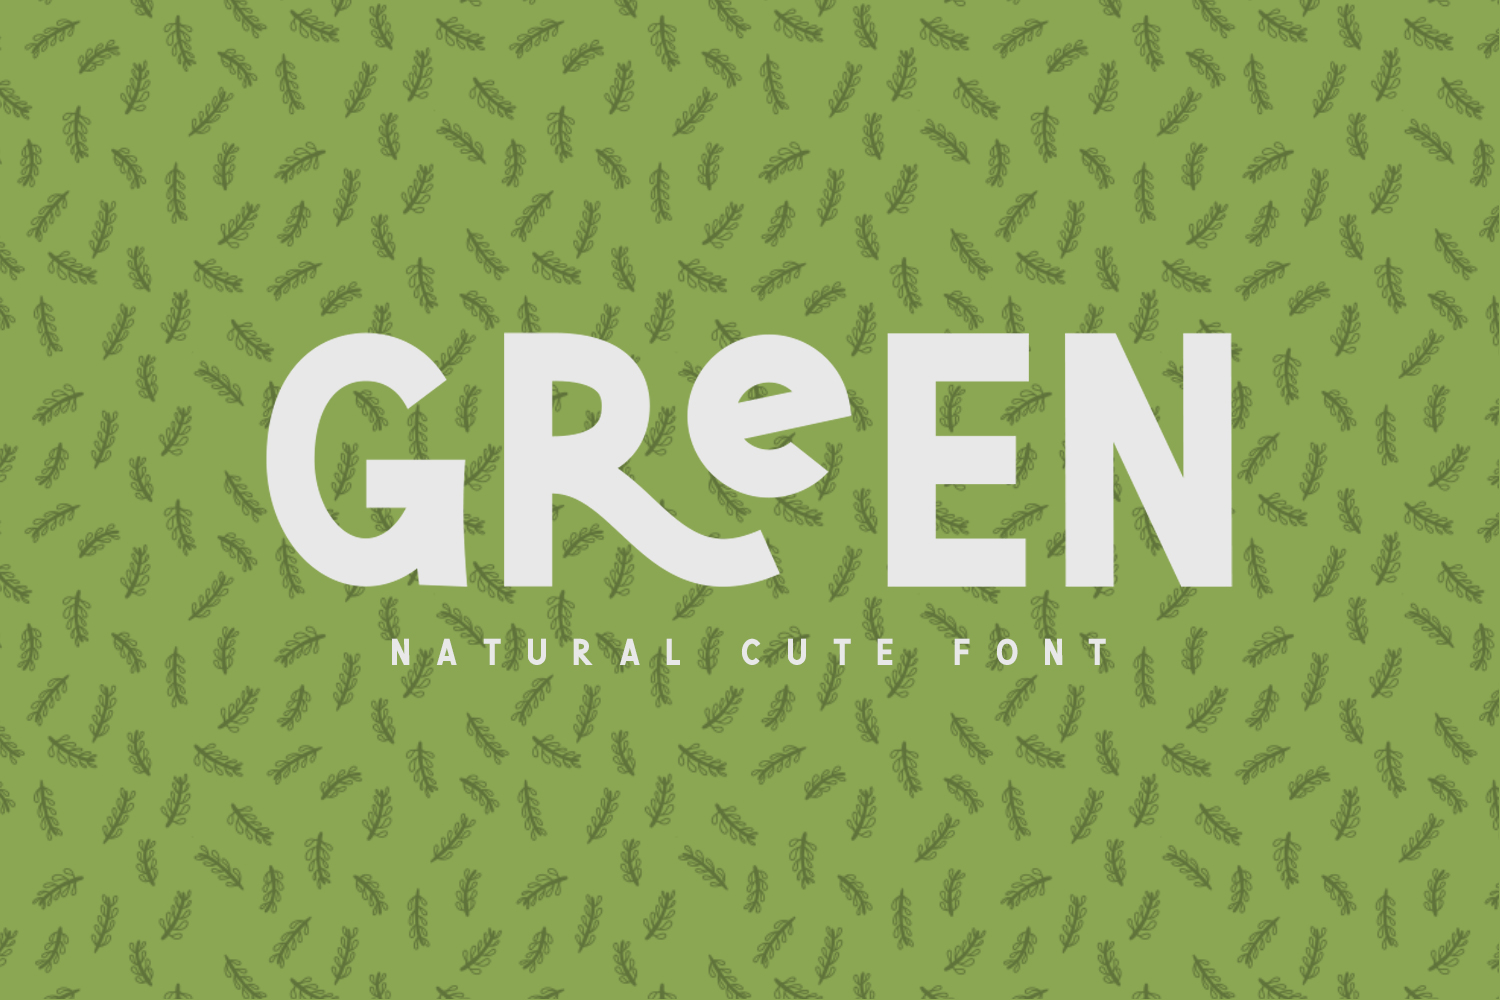 Green | Natural Cute Font example image 1